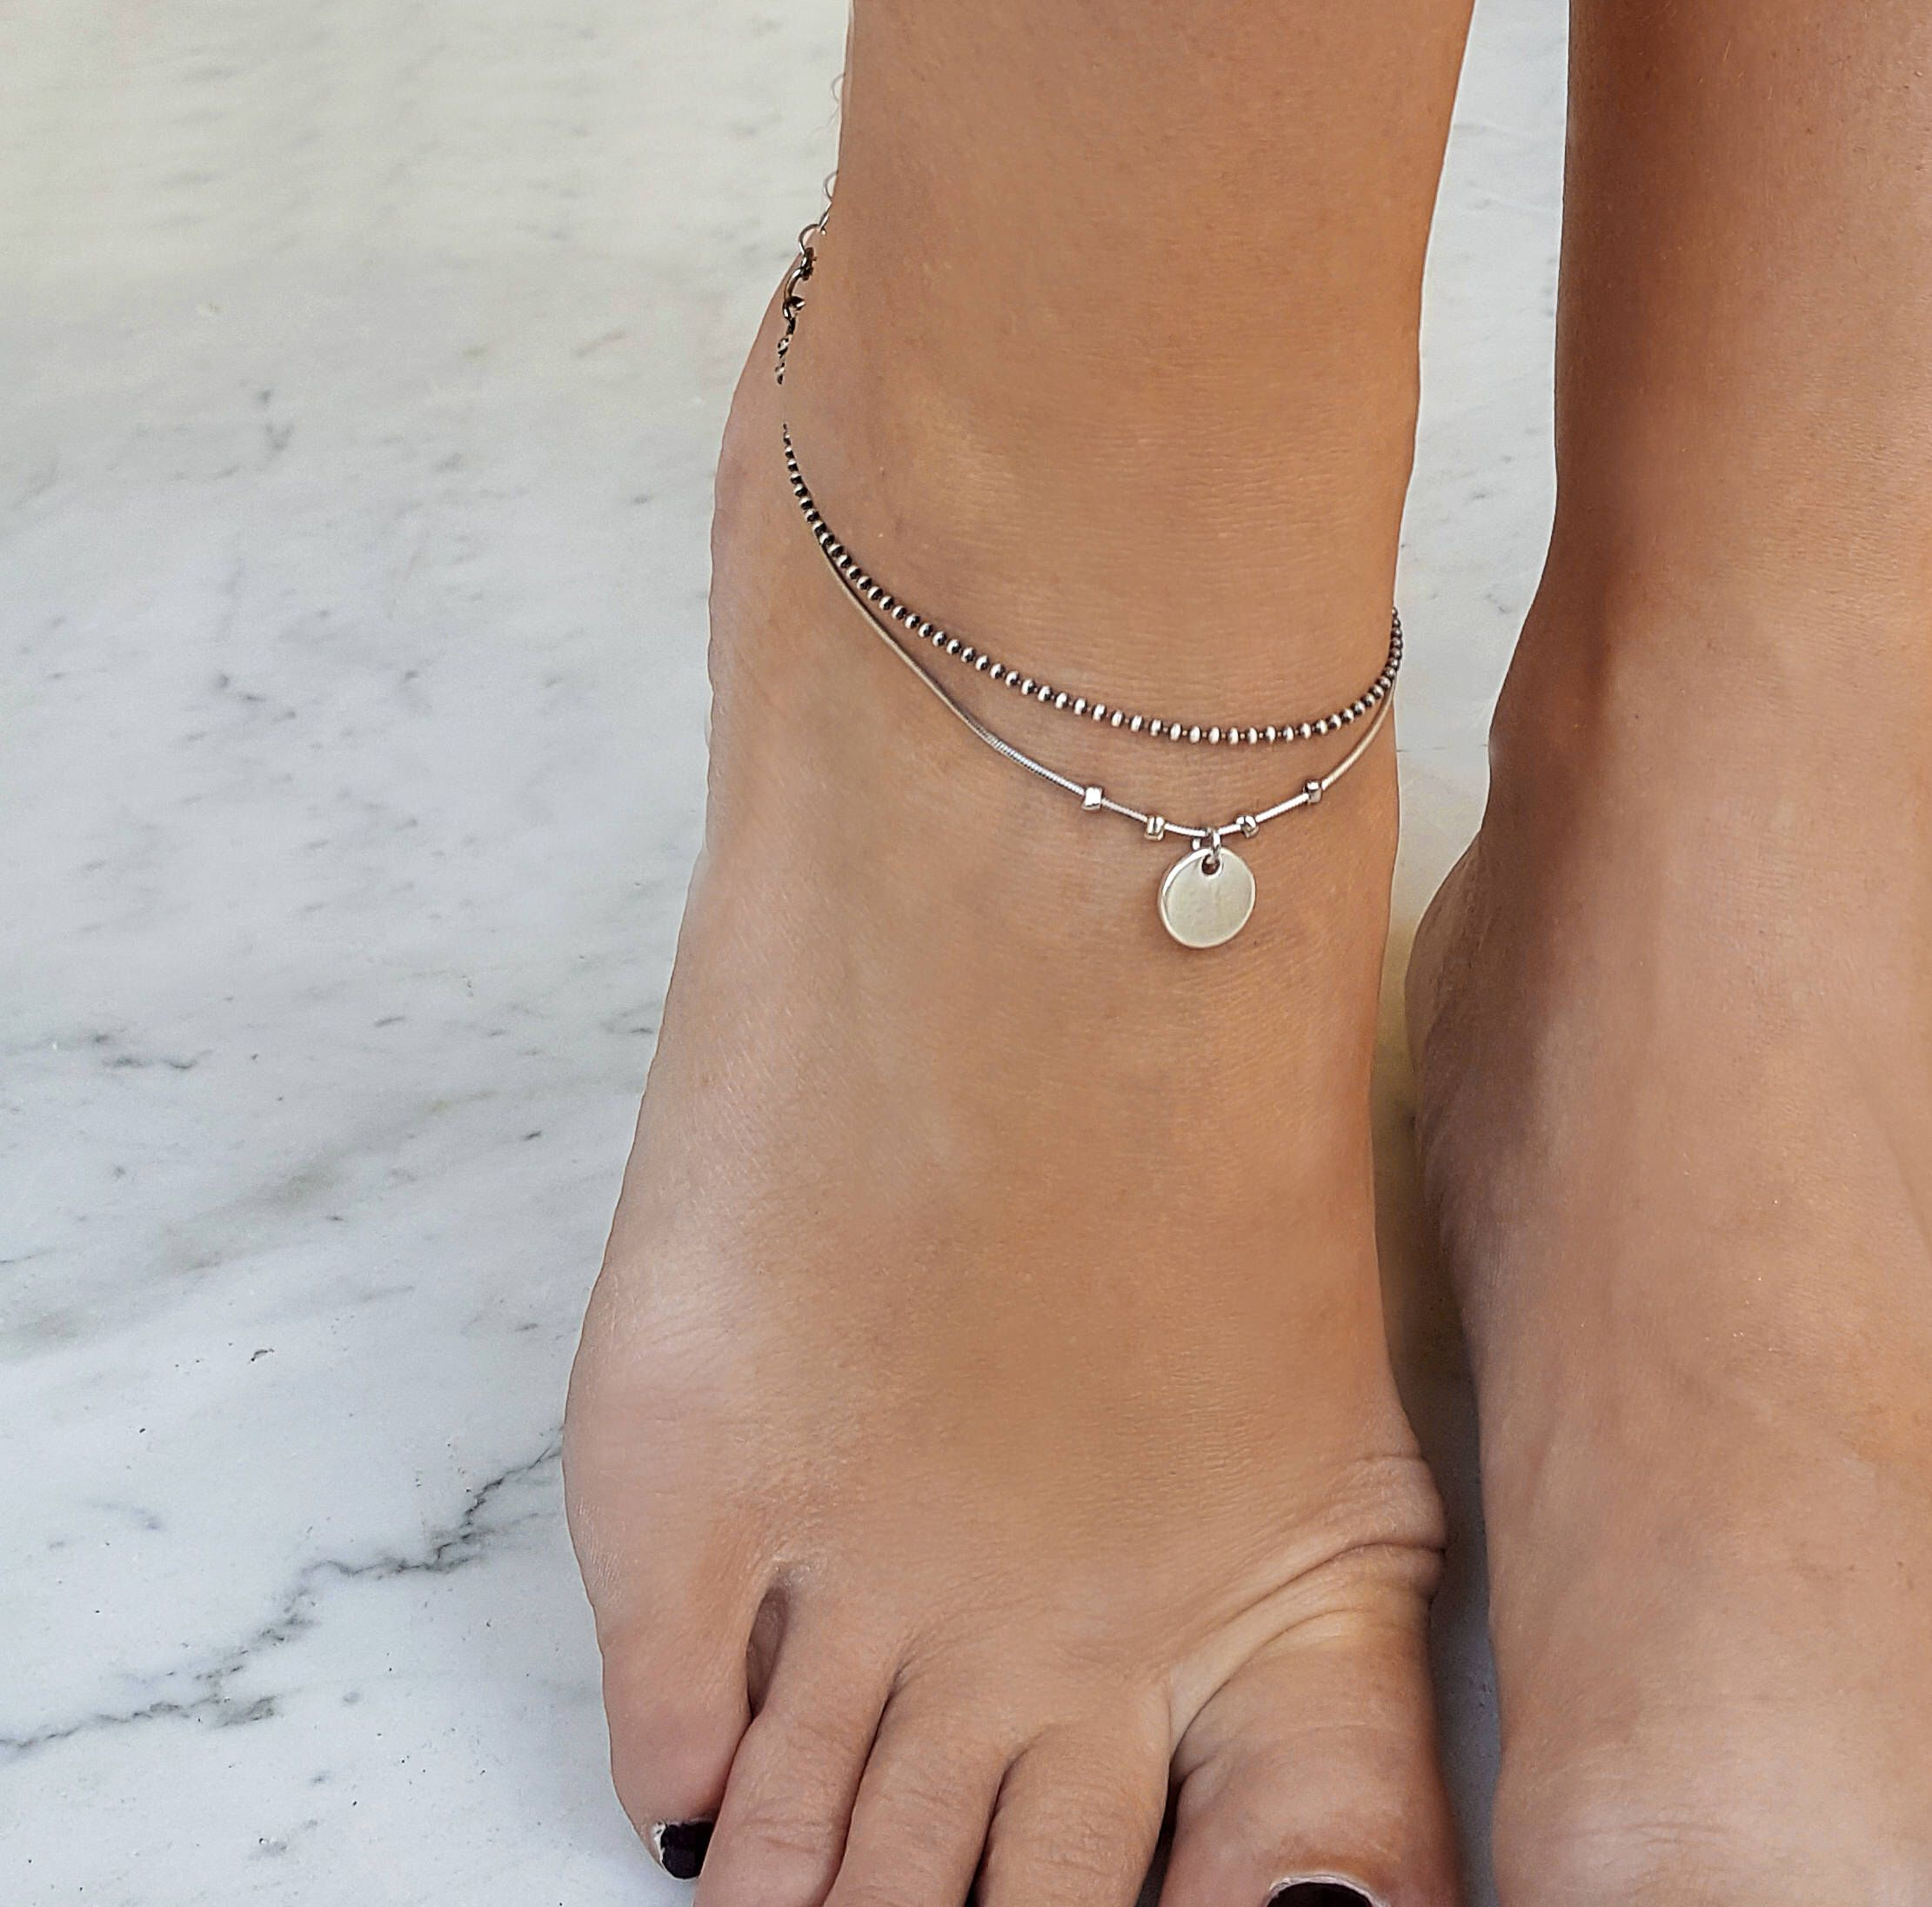 sale simple ankle anklet jewellery ksvhs beach pretty unique bracelets on ring toe beads